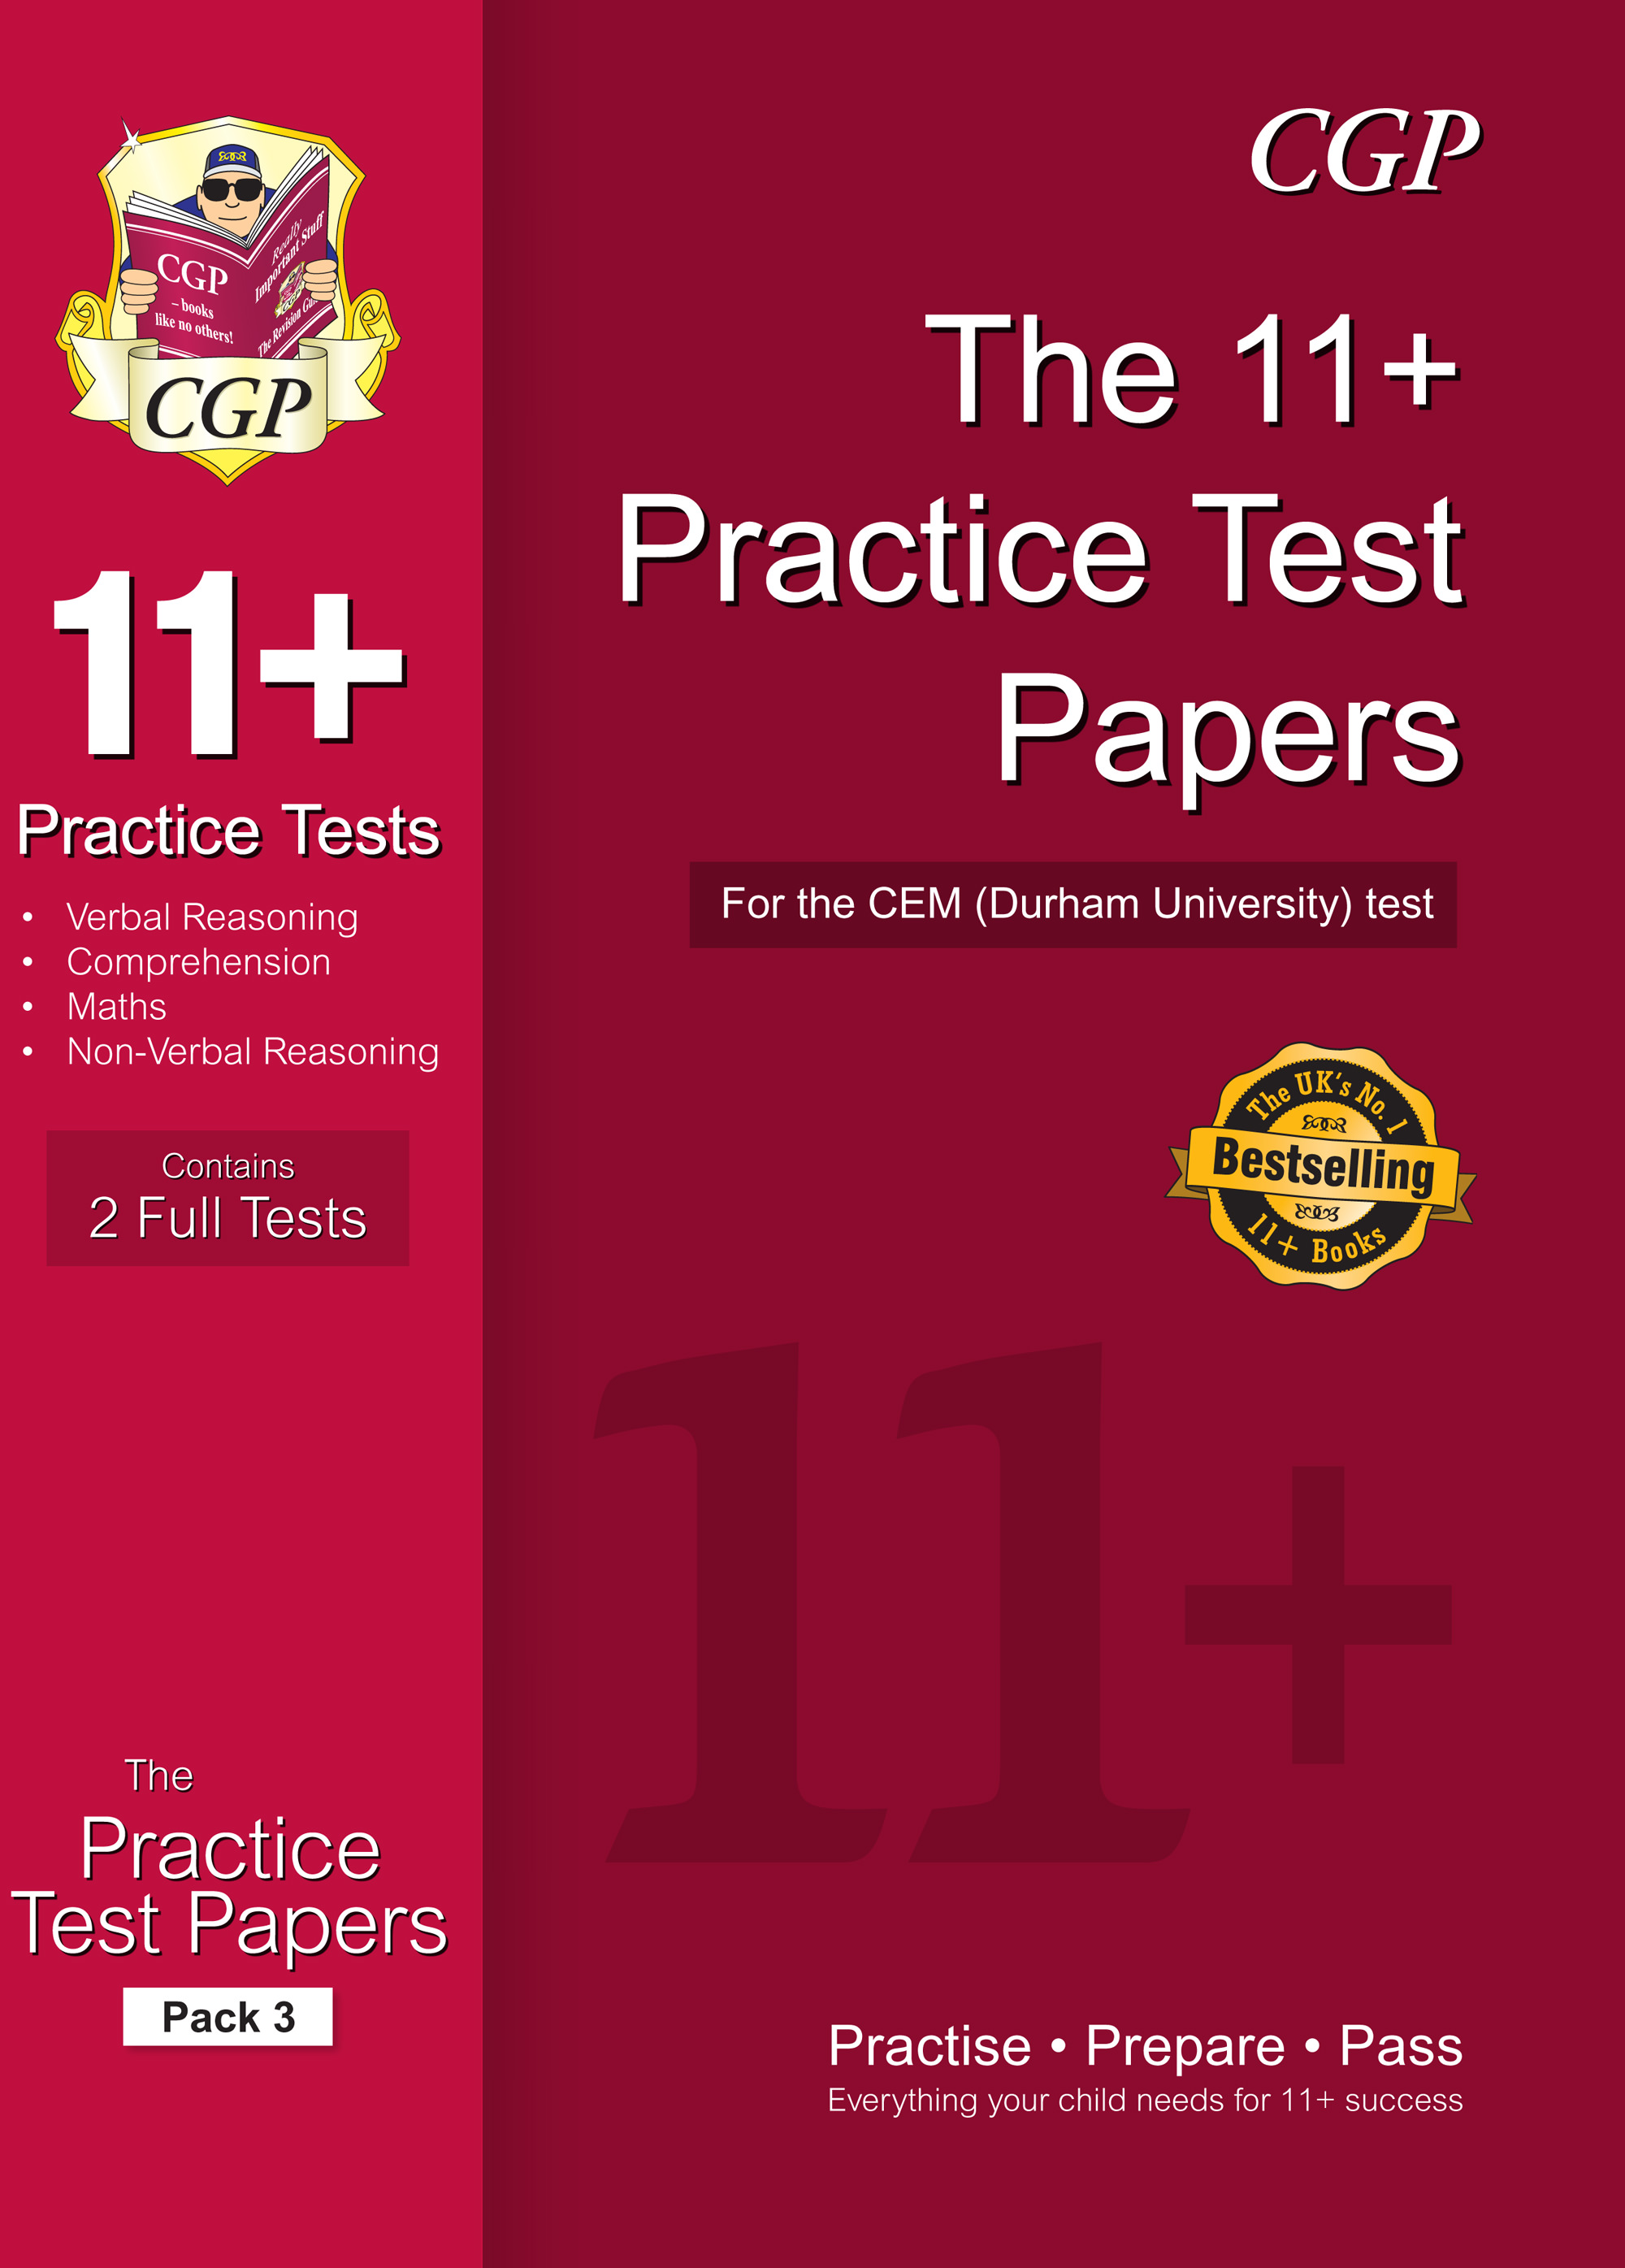 ELP3DE1 - 11+ Practice Papers for the CEM Test - Pack 3